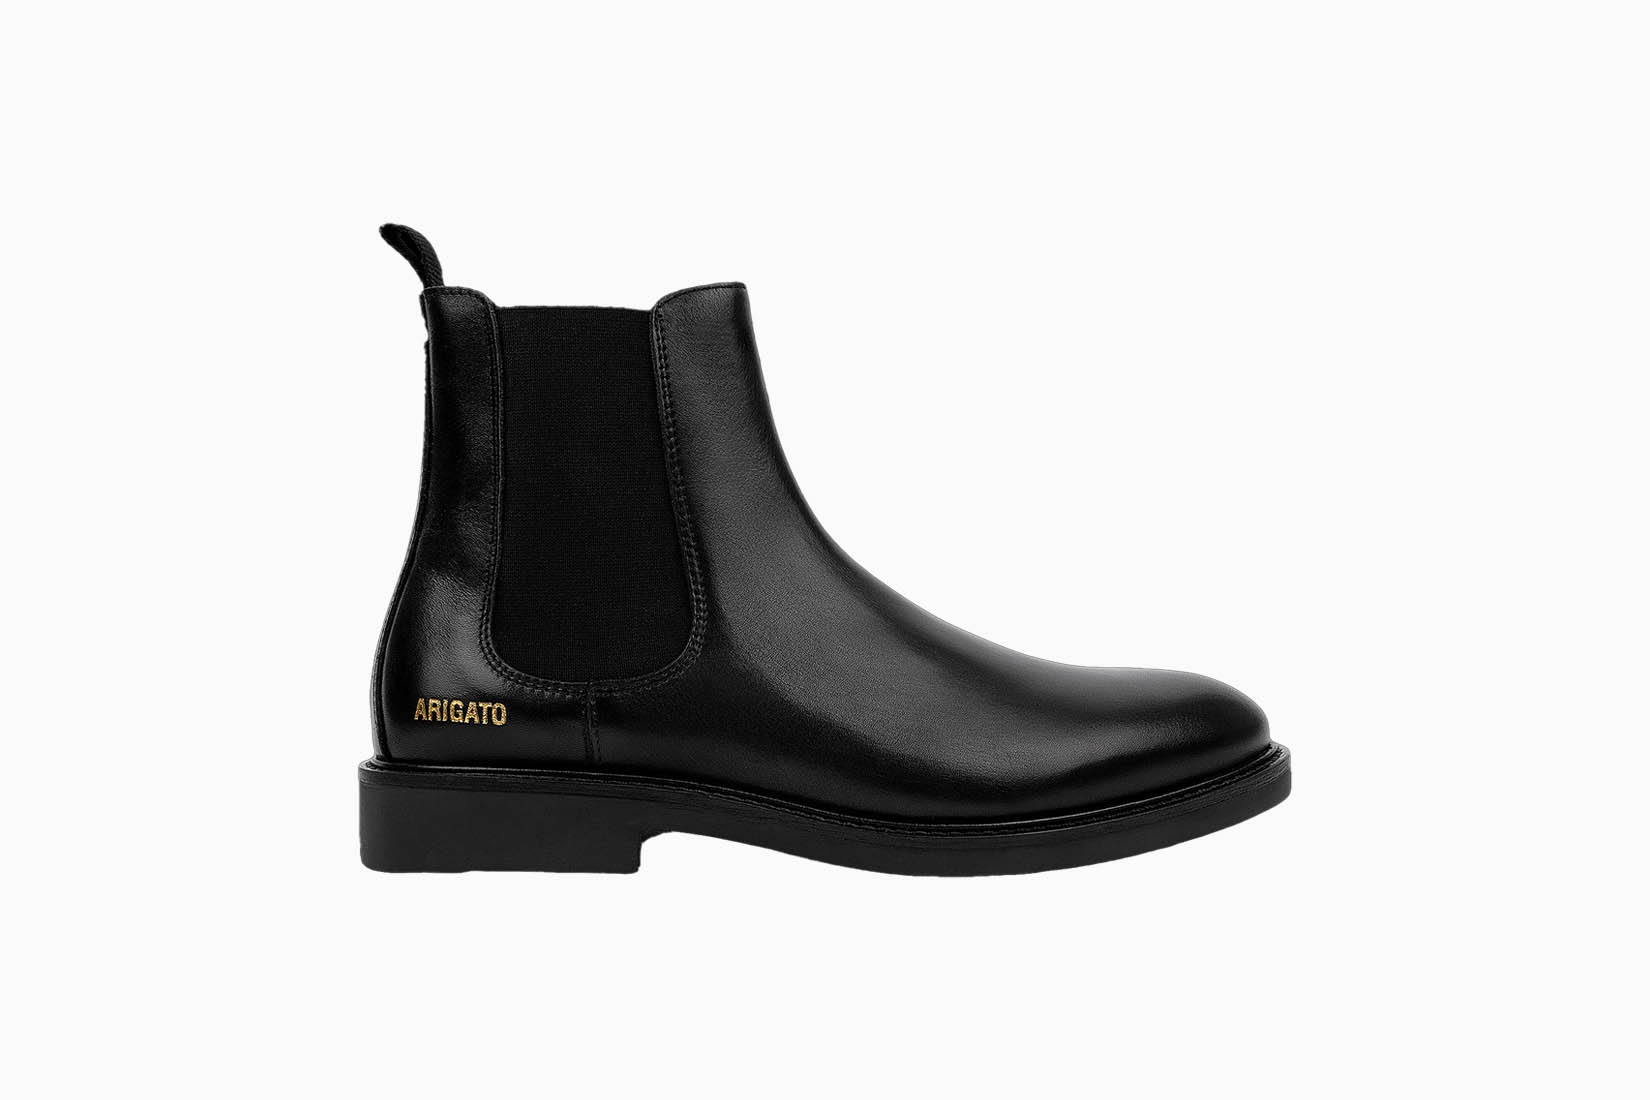 best casual shoes men axel arigato chelsea boot review Luxe Digital